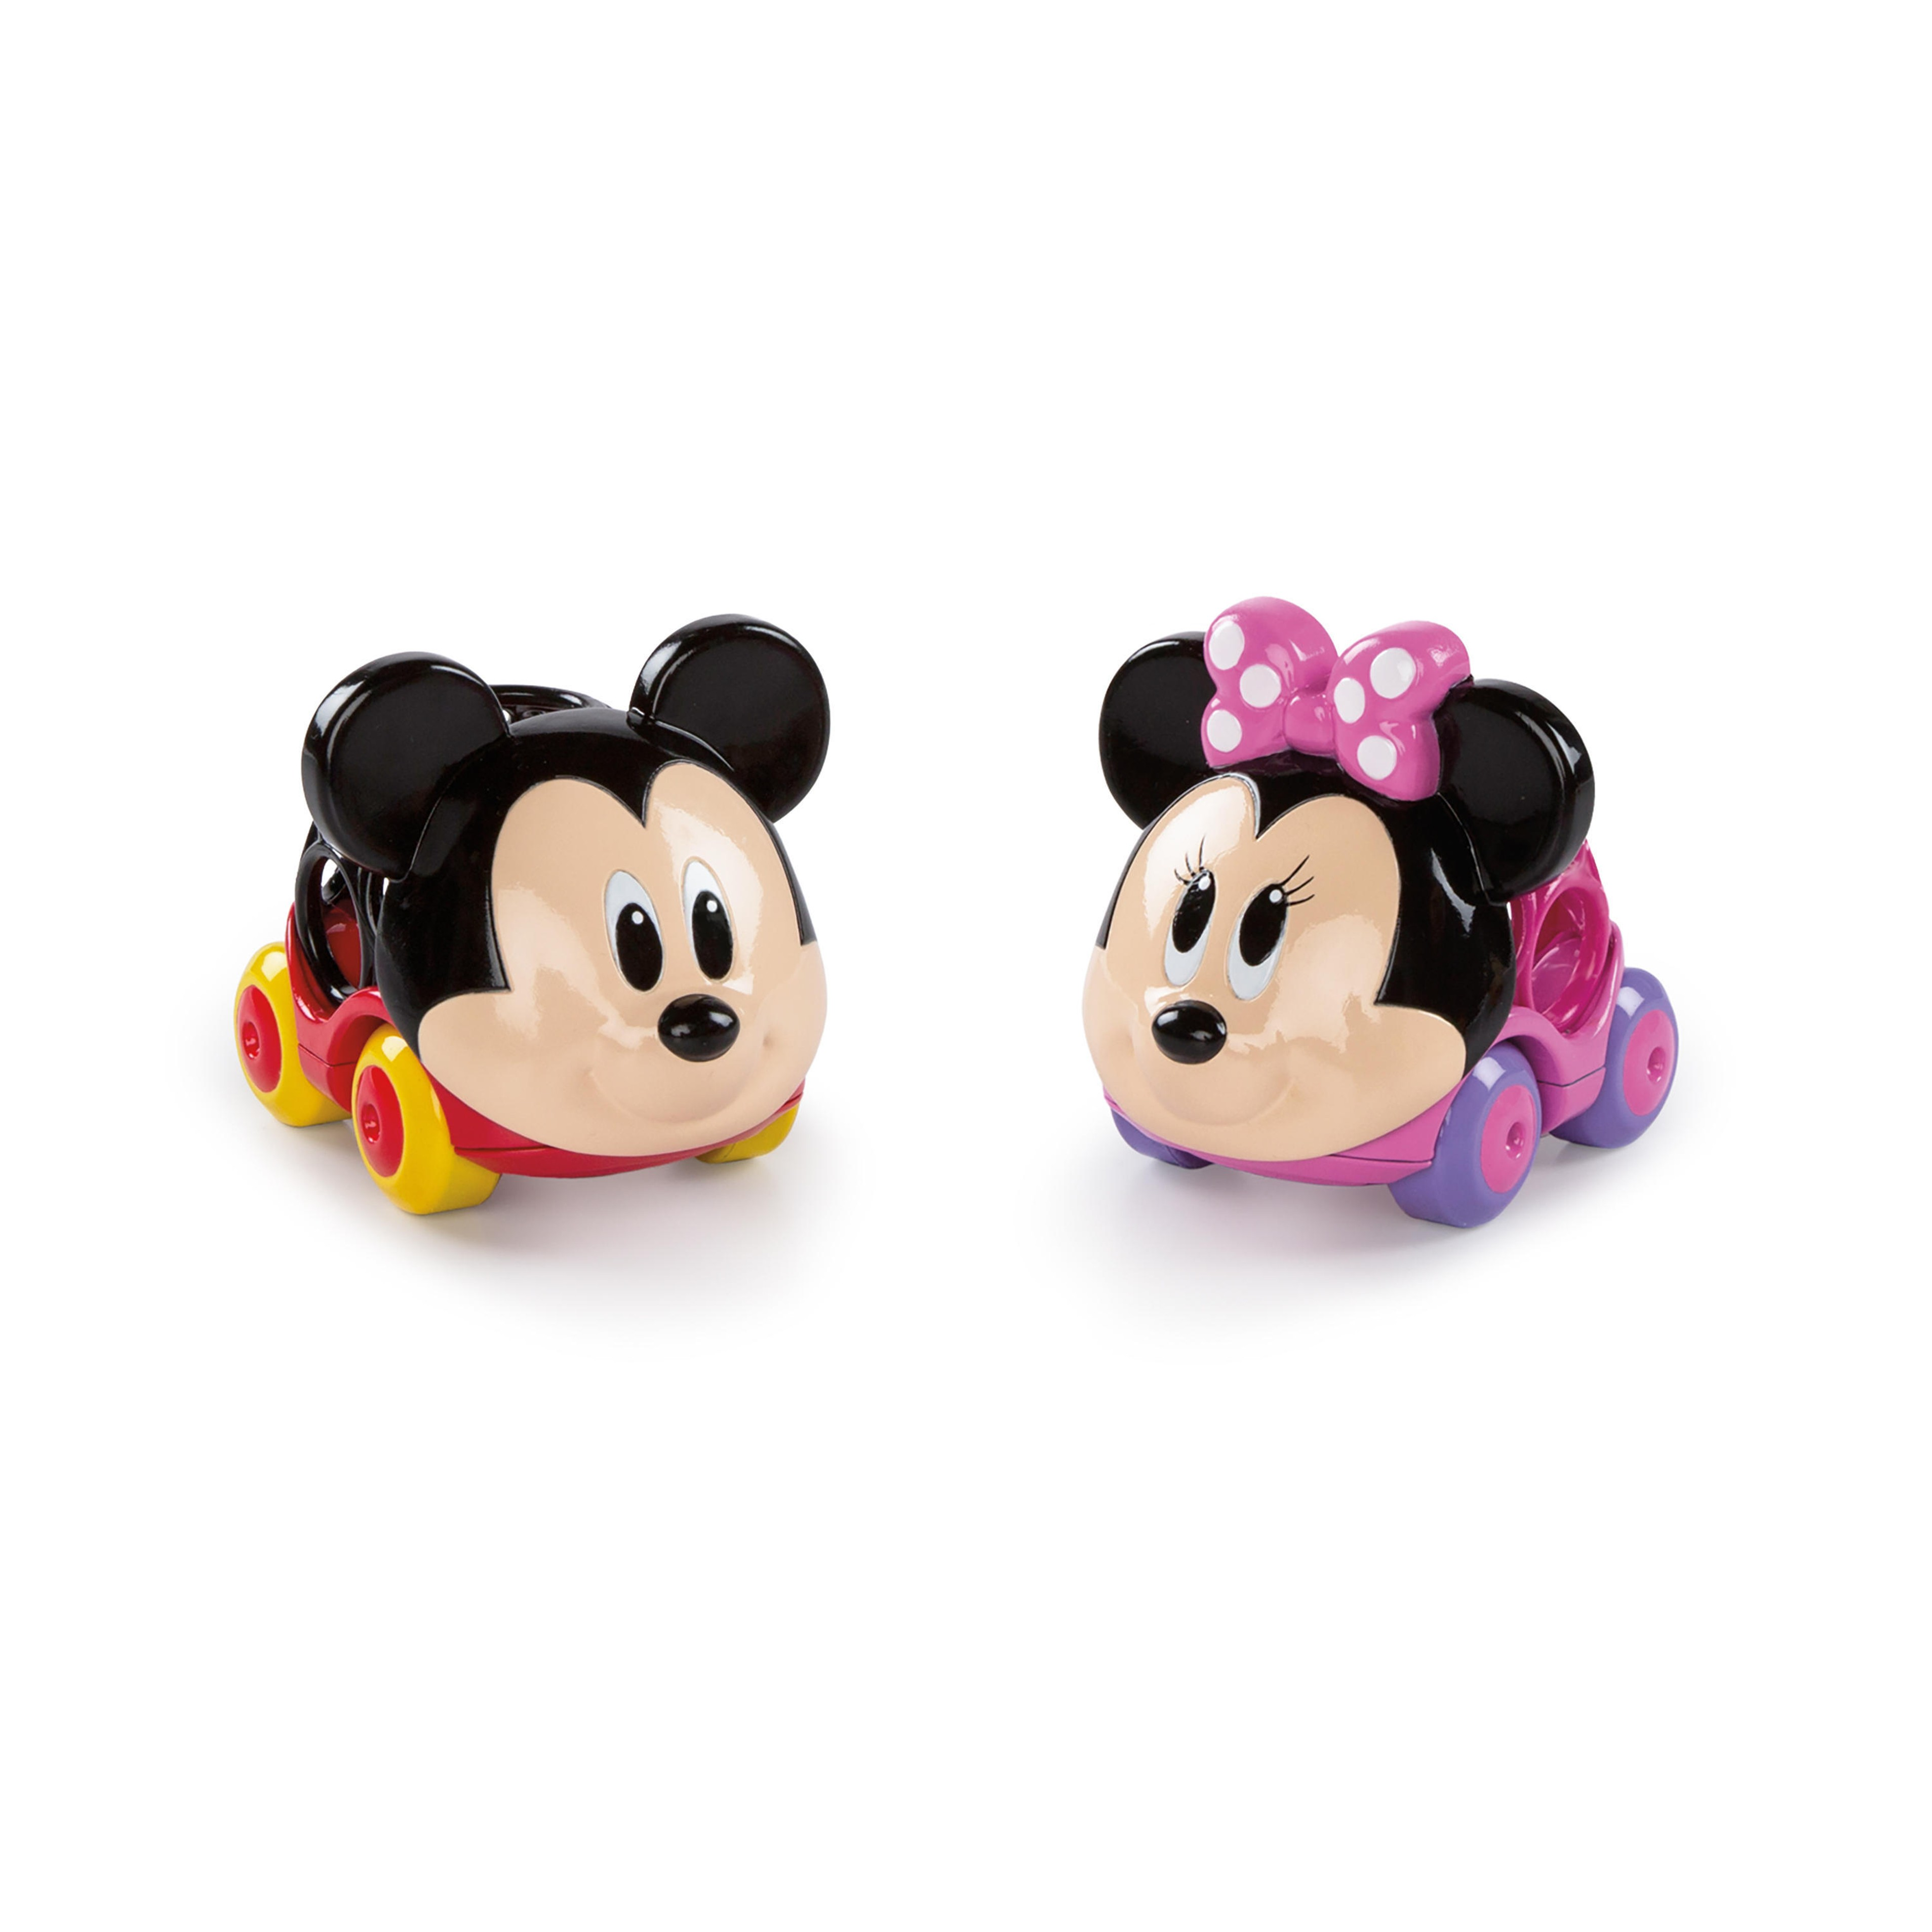 DISNEY BABY Hračka autíčka Mickey Mouse&Friends Go Grippers™ 2 ks 12 m